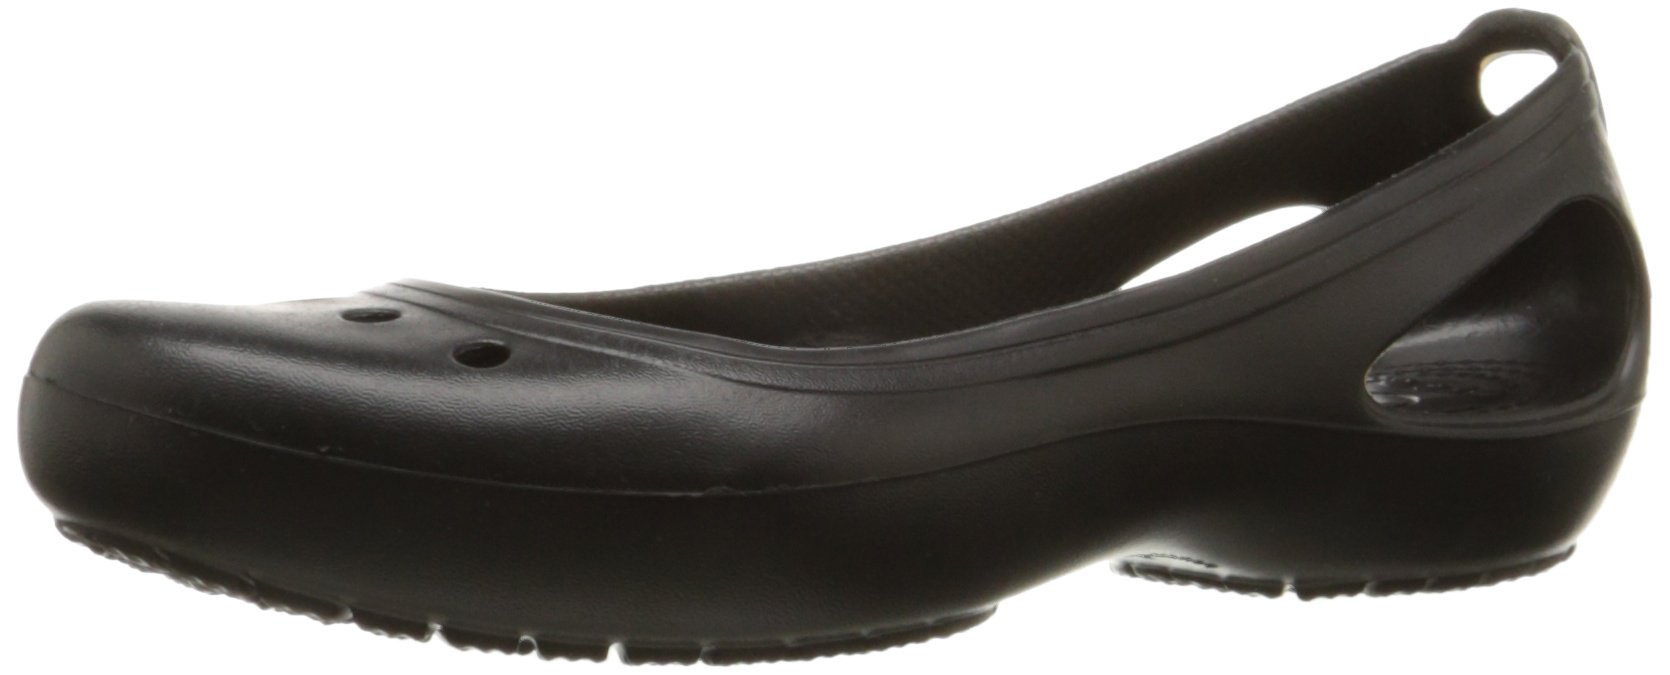 Crocs Women's Kadee Ballet Flat,Black/Black,8 M US by Crocs (Image #1)